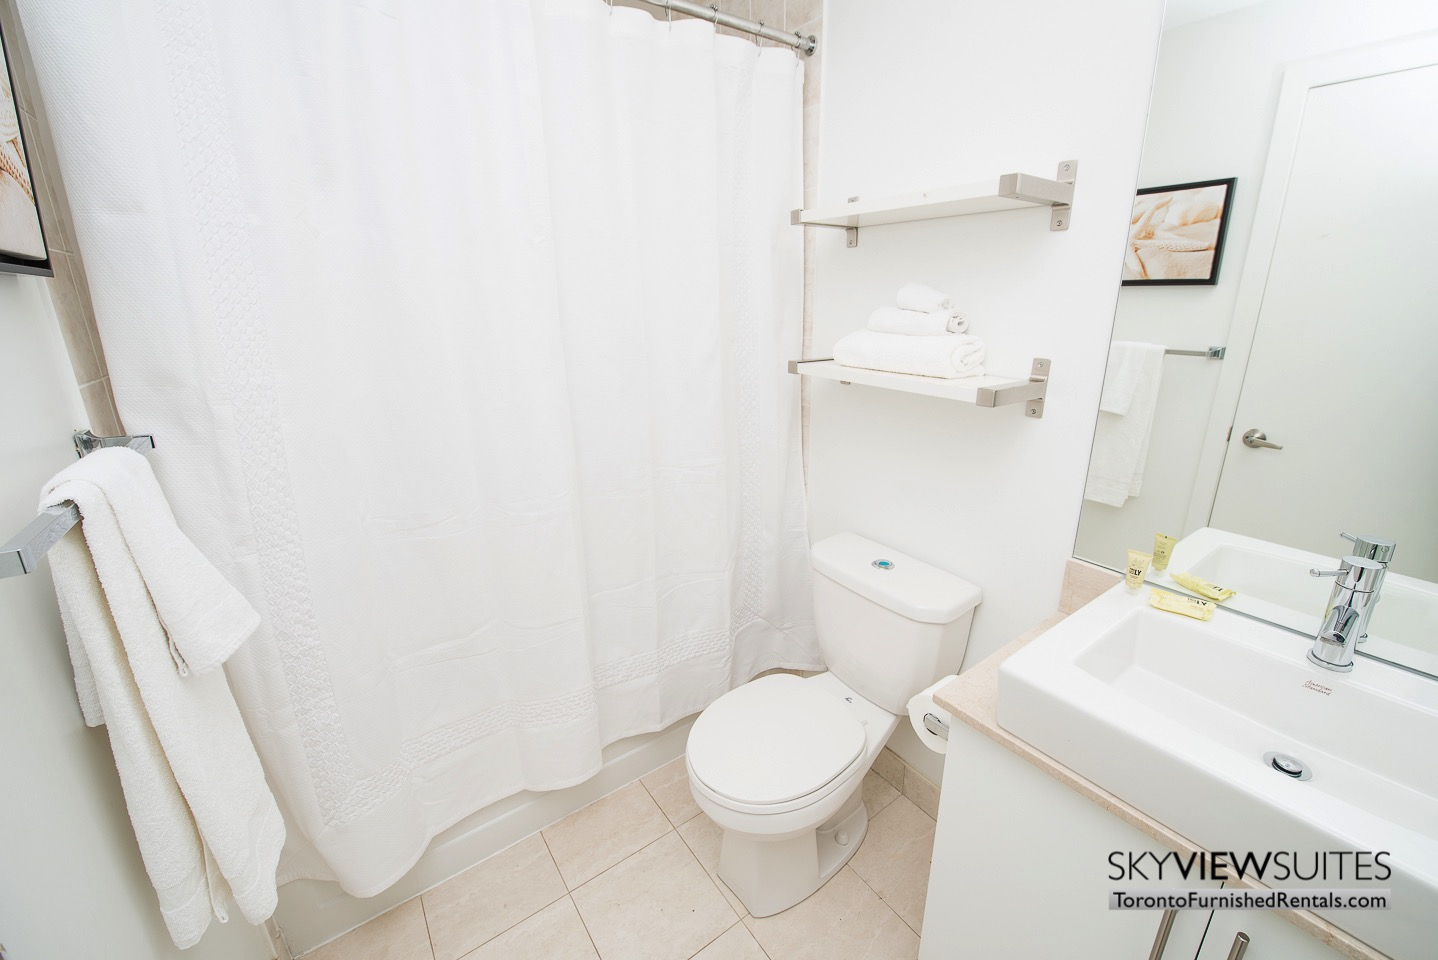 MLS furnished condo toronto bathroom